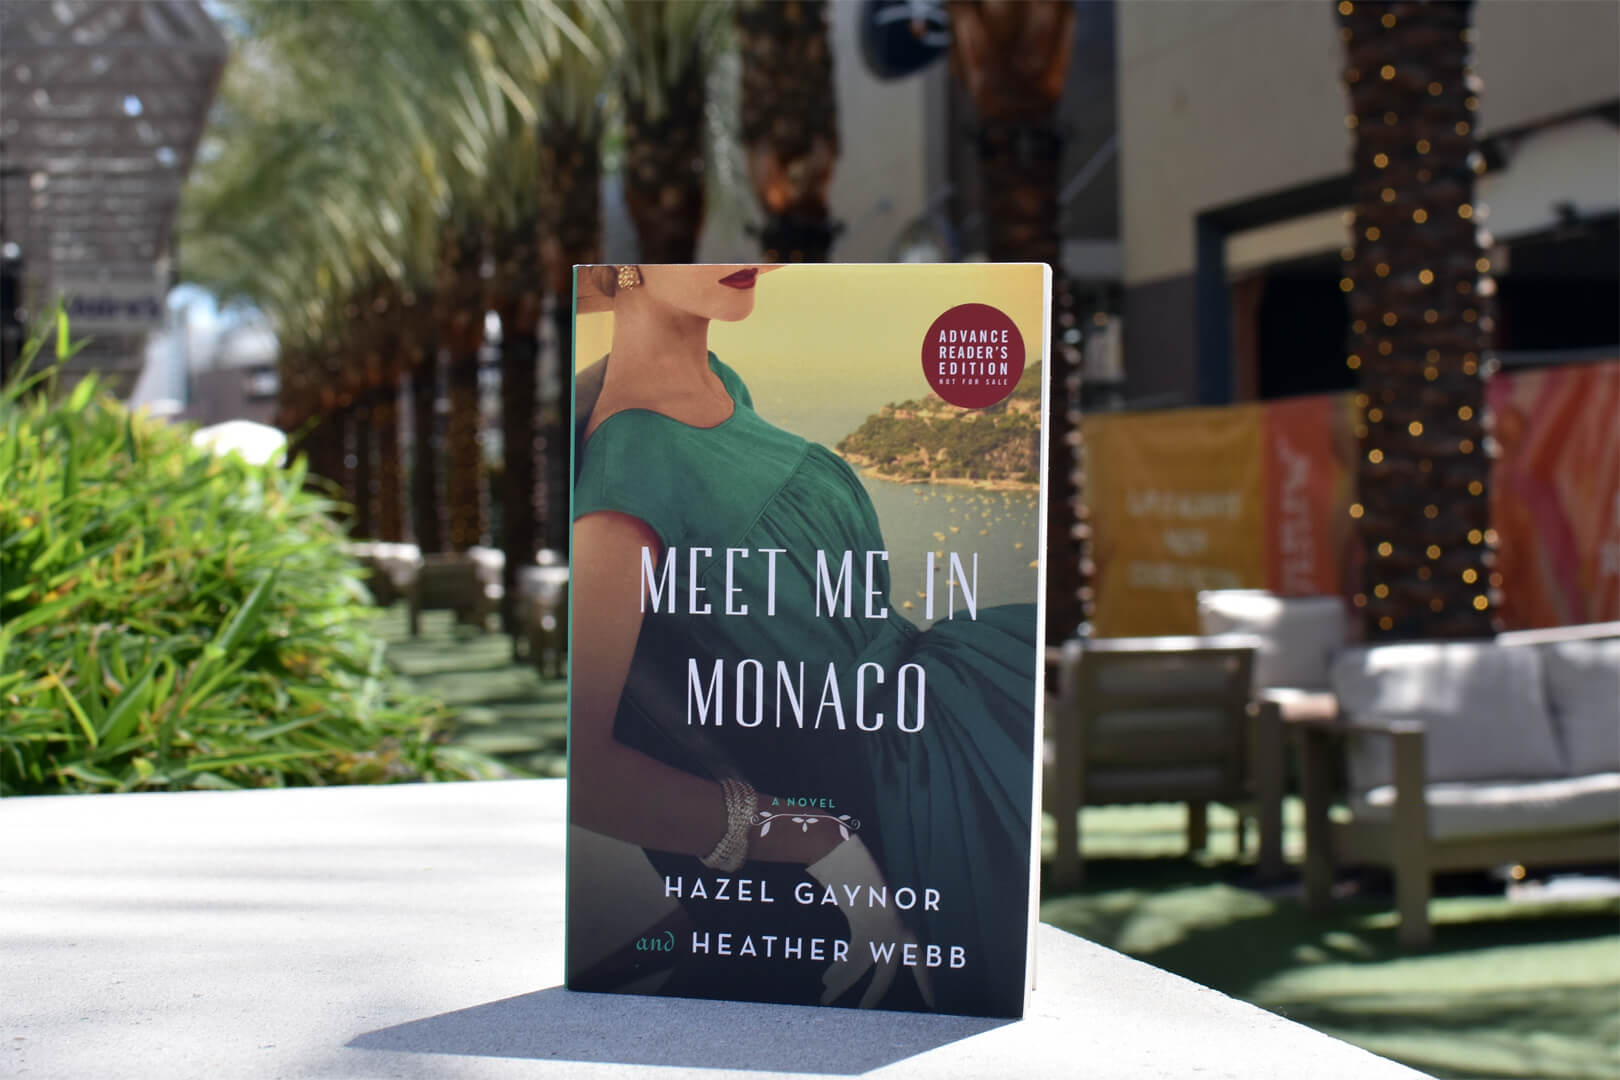 Meet Me In Monaco Book Club Questions - Book Club Chat